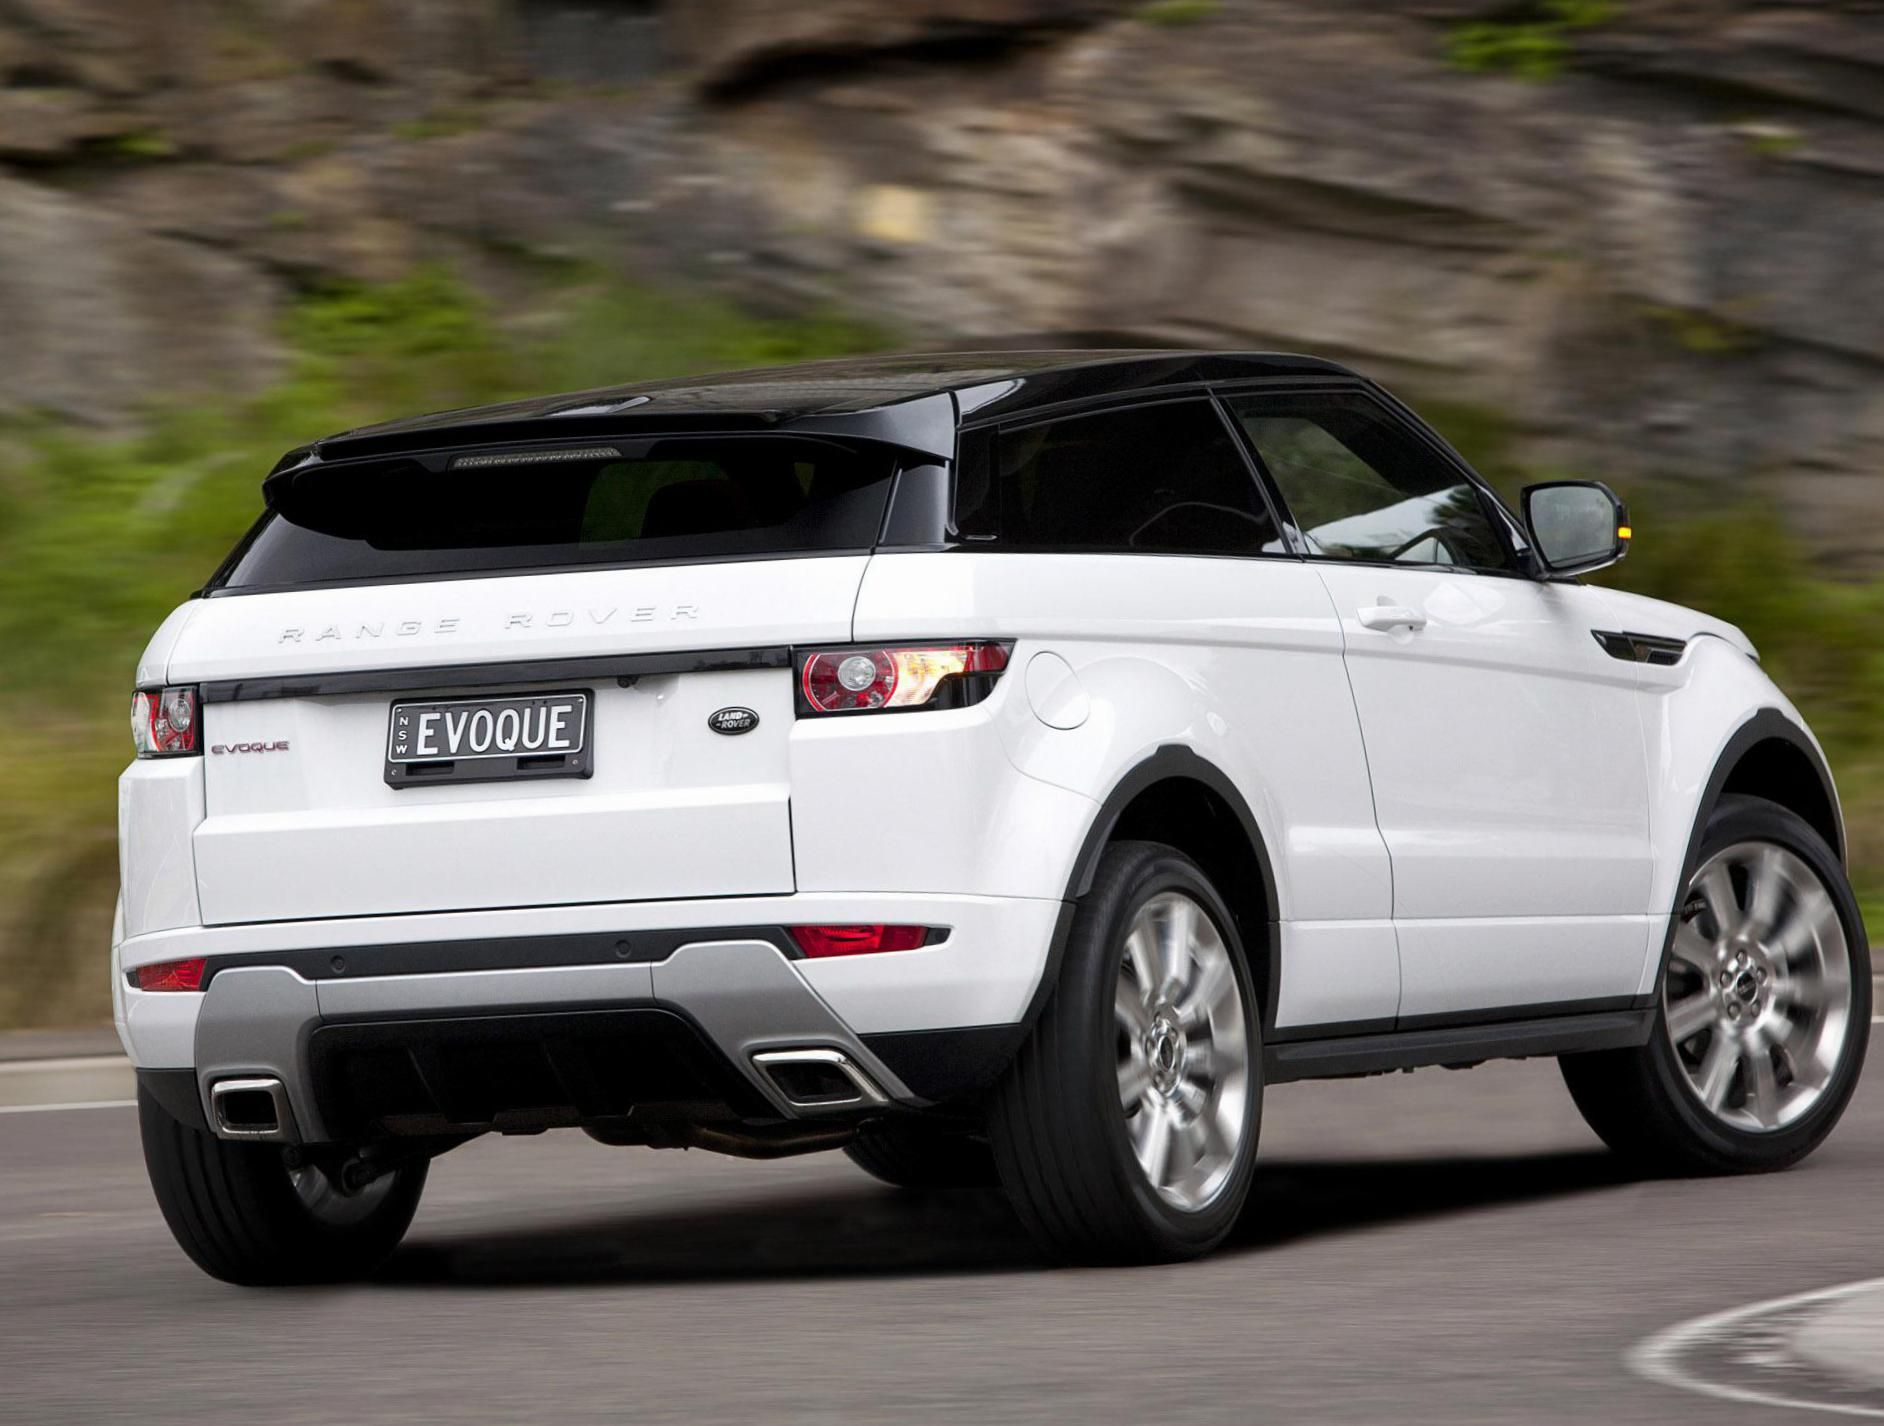 Pin By Vina Tran On What I Need In My Life Range Rover Evoque